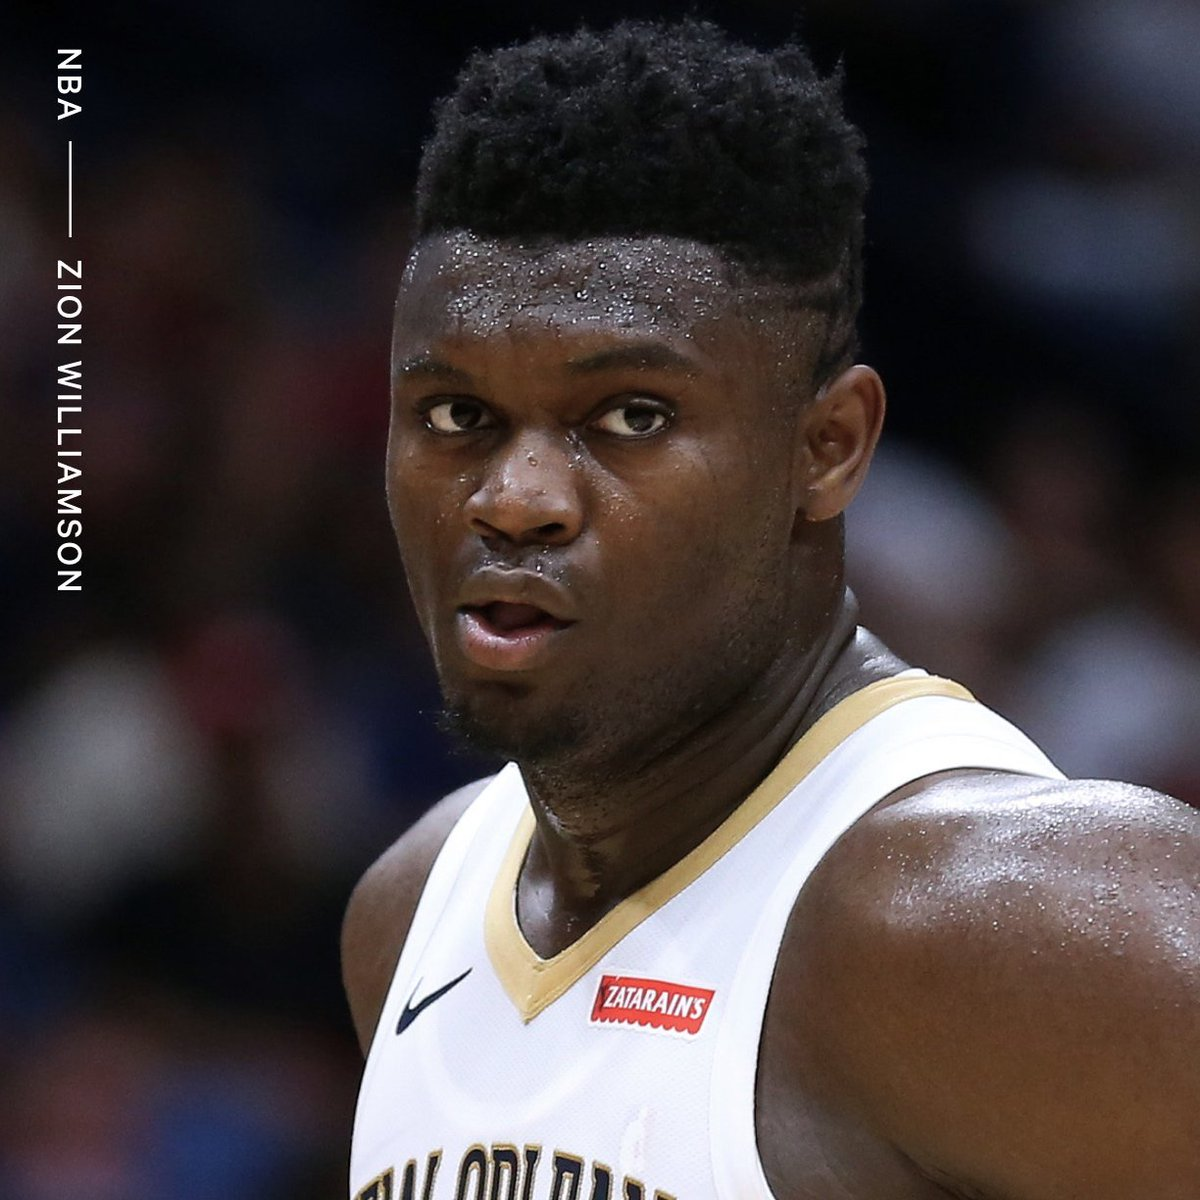 Certain members of Zion Williamson's family want the rising star on another team.  Have the family's feelings seeped into Zion's own views?  @ShamsCharania, @joevardon & @WillGuillory on the Pelicans' ongoing battle to keep Zion happy:https://t.co/oVlyRzaAYQ https://t.co/PB5r76uXuT